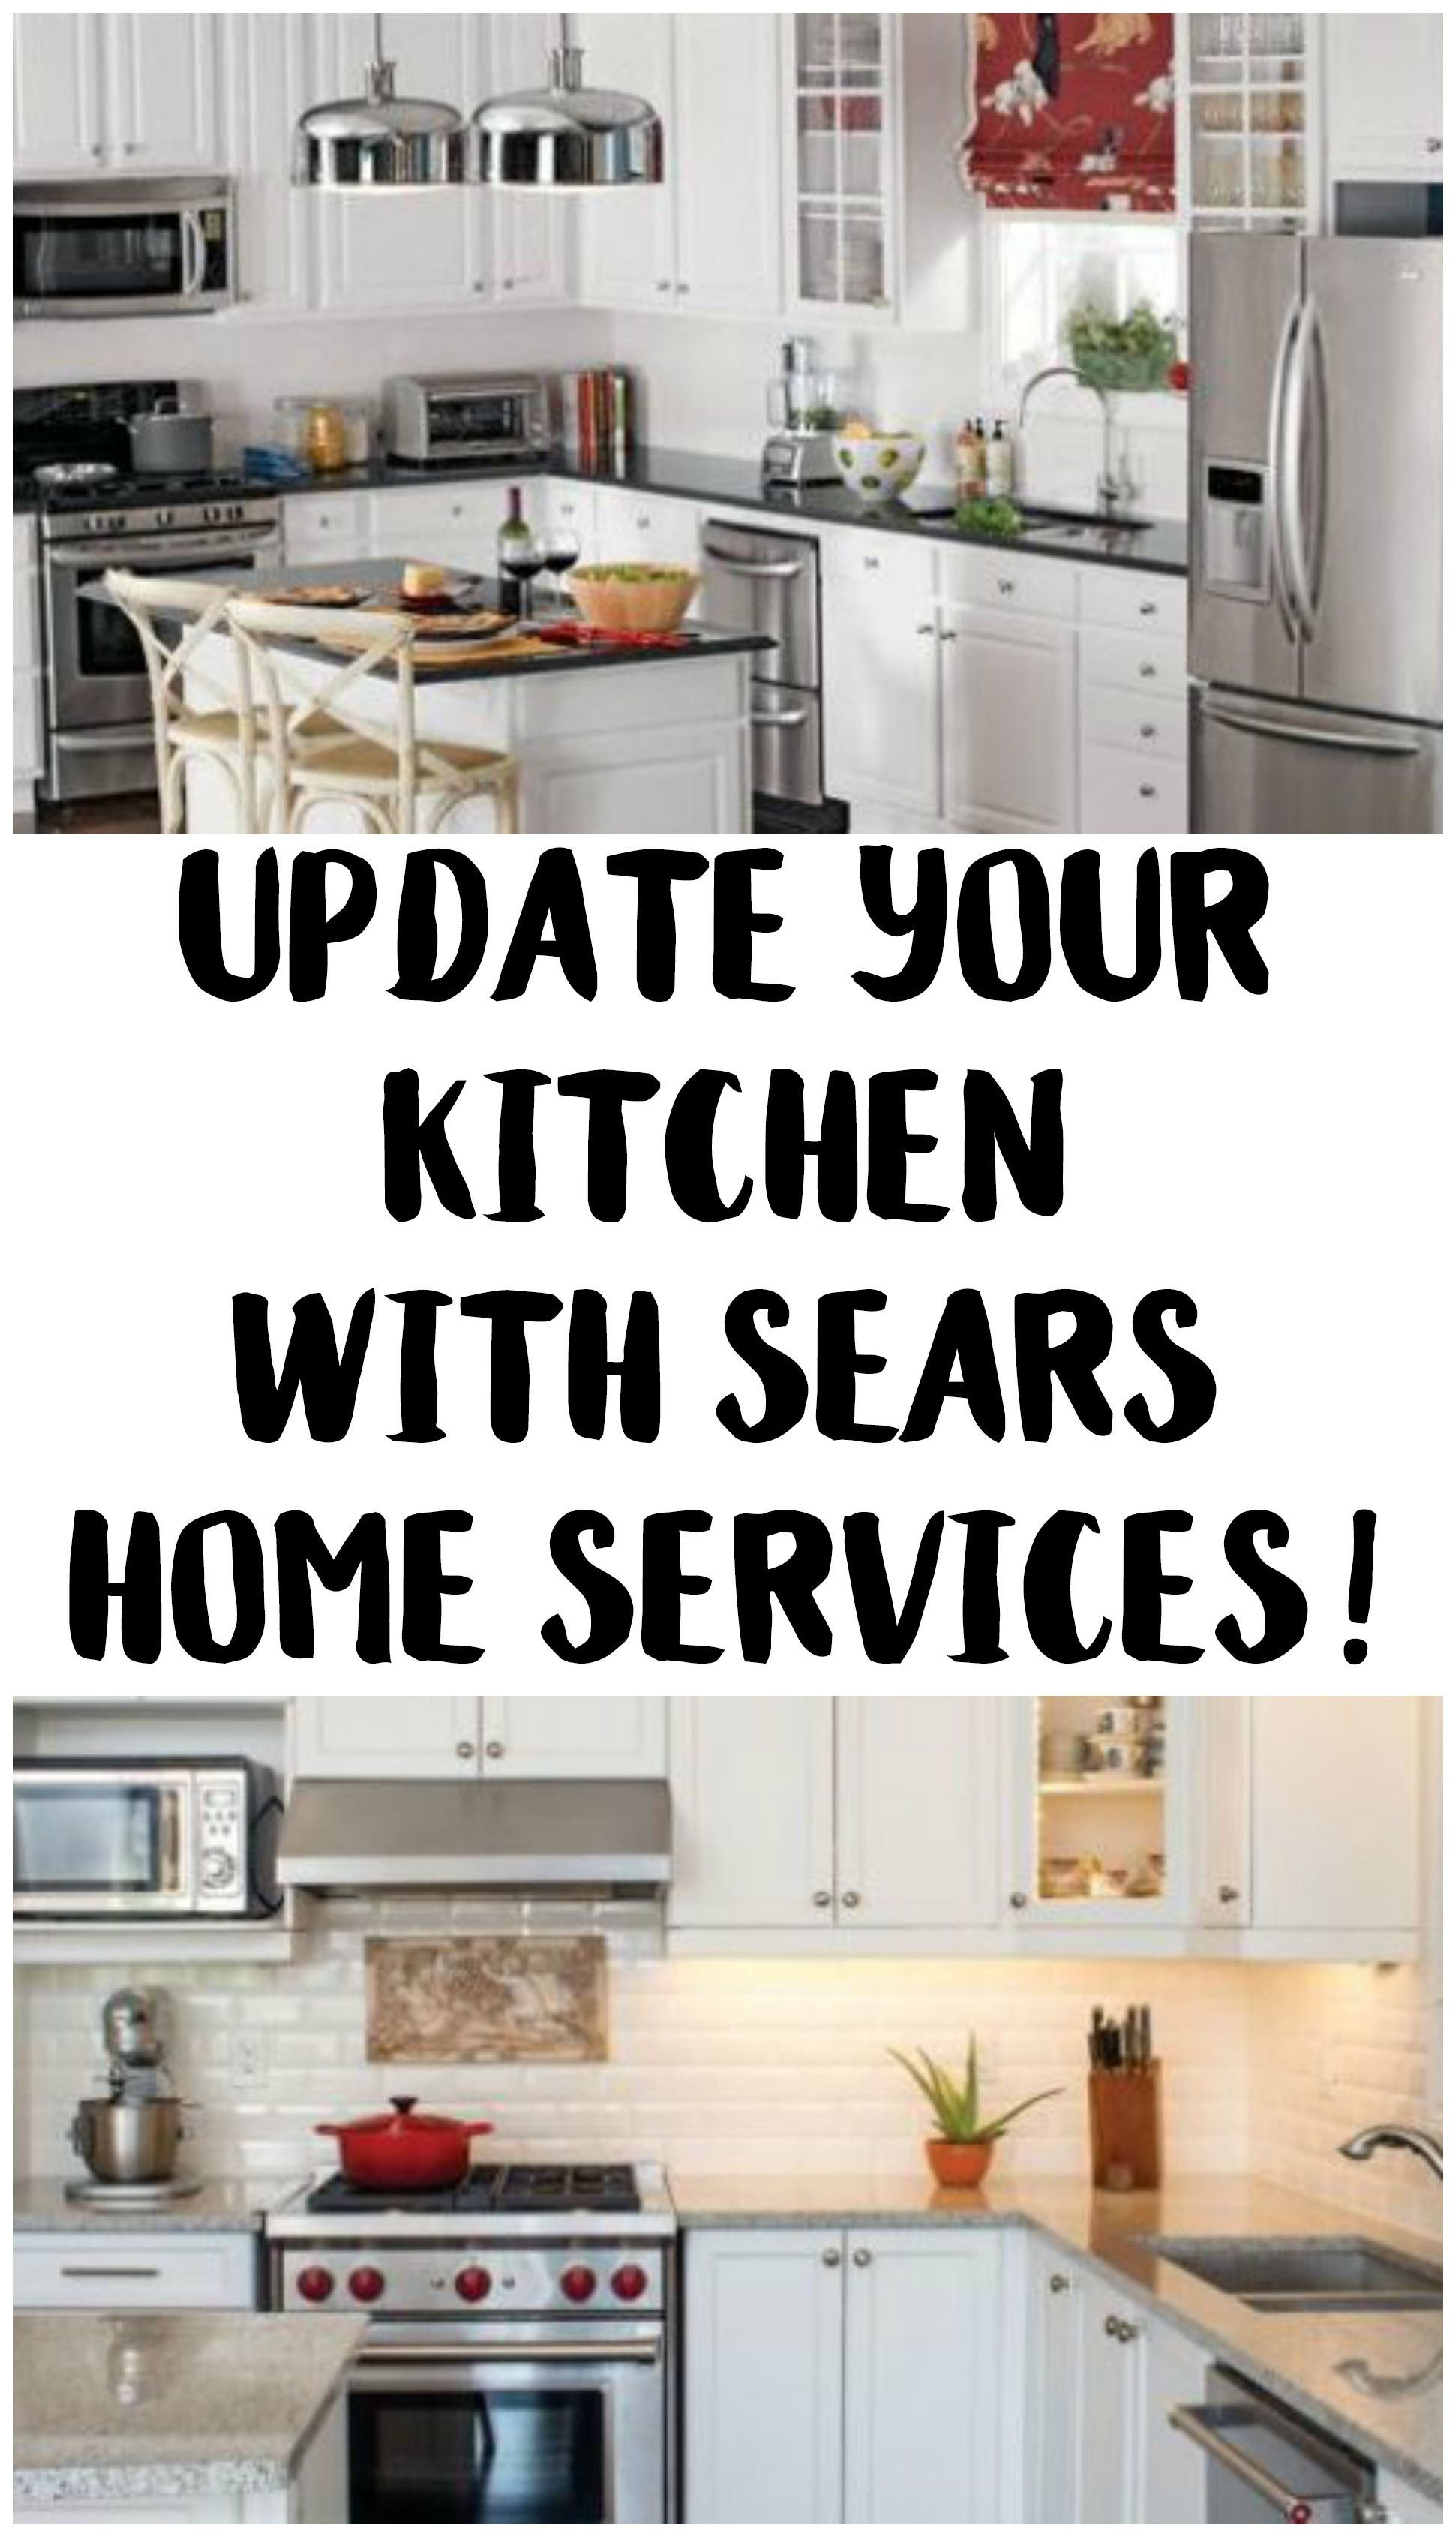 Update Your Kitchen Save With Sears Home Services Updated Kitchen Kitchen Home